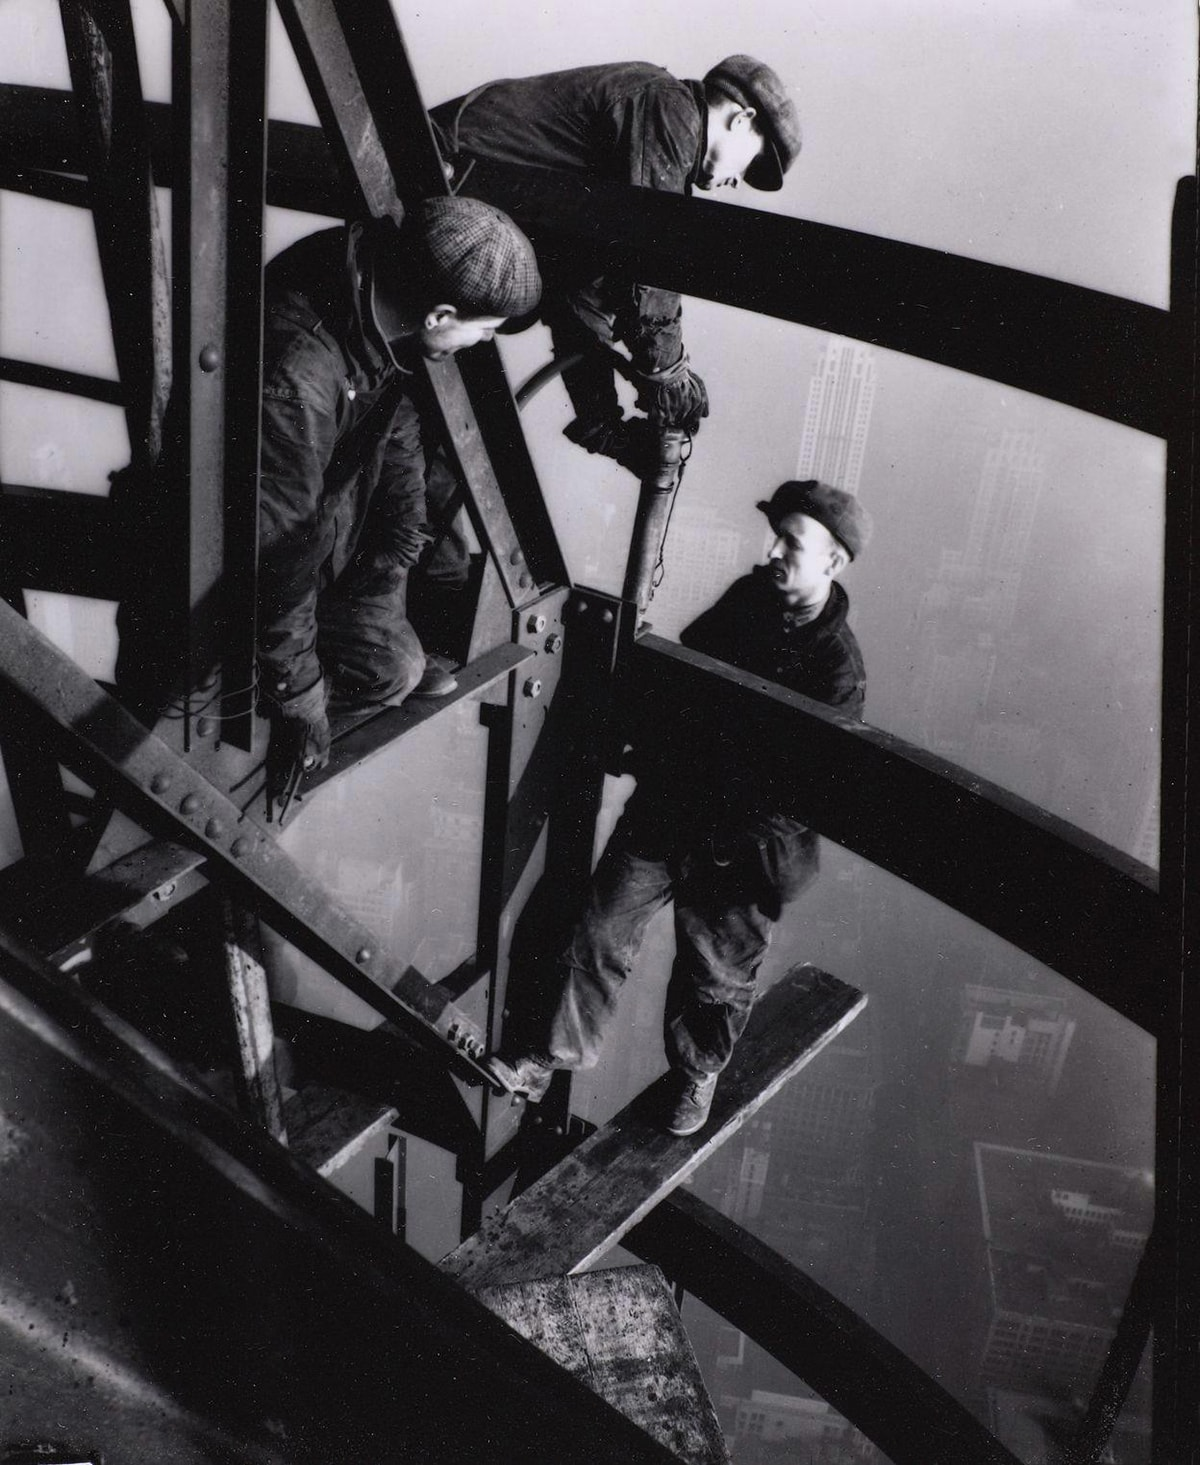 Lewis W. Hine, Top of the Mooring Mast, Empire State Building, 4 7/8 × 3 ¾ inches, gelatin silver print. A vertical rectangular, black and white photo of three light skinned men working on steel girders above a hazy cityscape. Three wide girders run parallel and diagonally from the upper left to the lower right. Other beams form a triangular structure near the upper center. One man kneels in this triangle while watching another to the right as he leans over appearing to rivet a beam below. The third man is standing at center right on a wooden plank that balances on a lower beam and juts out into the open air. The men wear work clothes of coveralls, boots, and flat caps. They do not wear safety gear. City buildings can be just made out through the haze behind them.